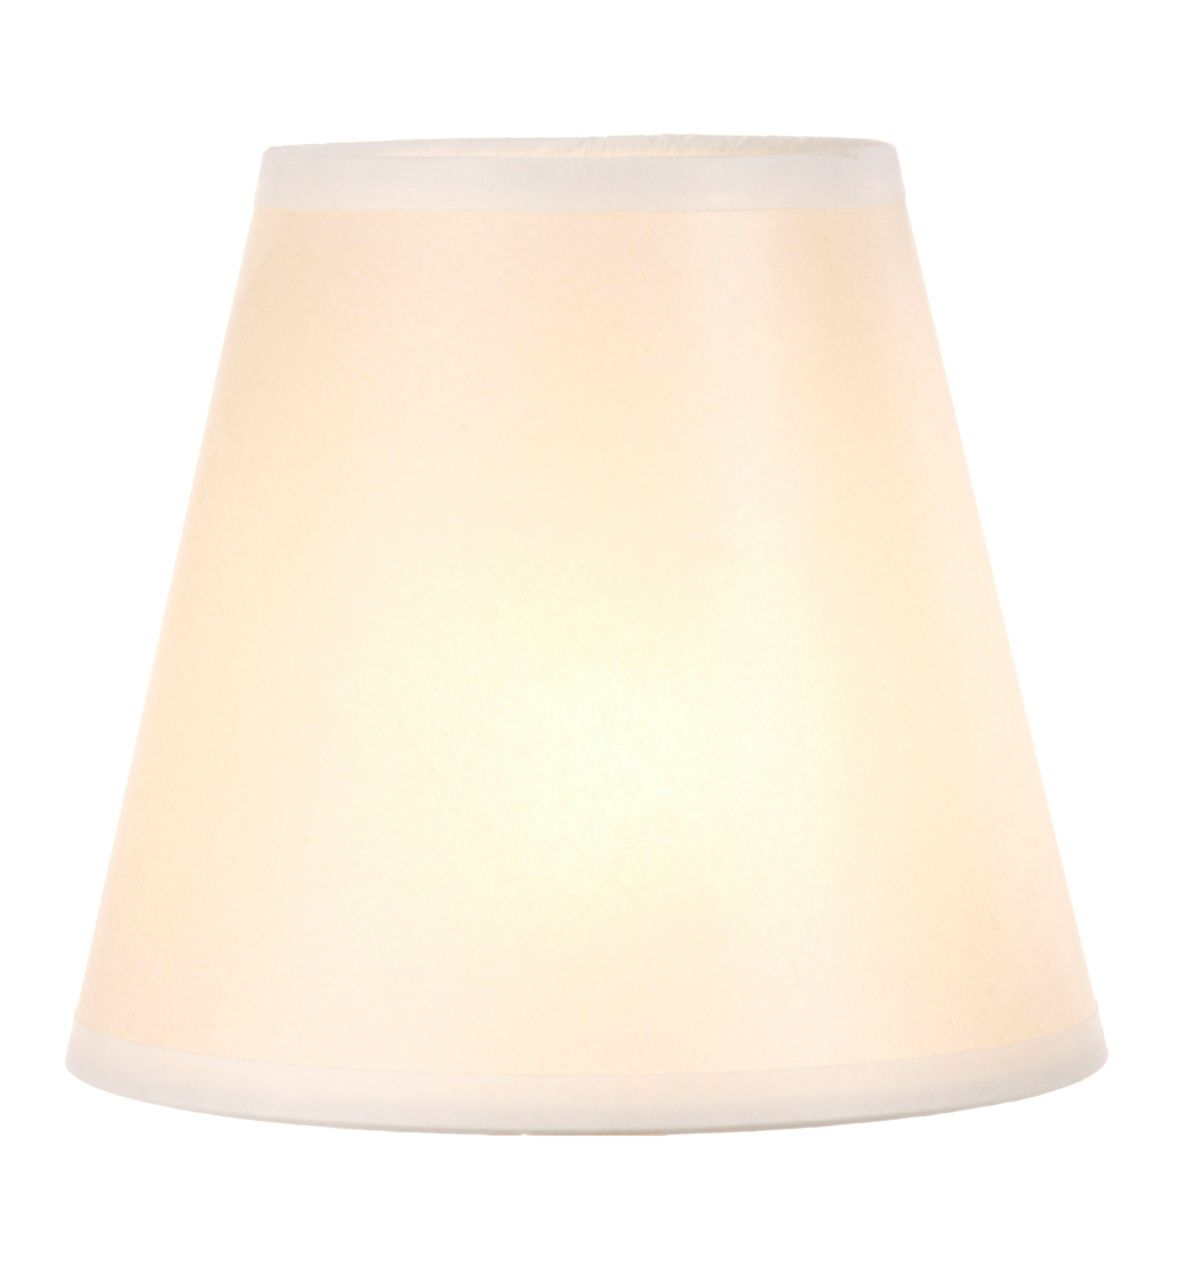 Ivory Glow Floor Lamp Shade 14 X 19 X 12 Lamp Shade Table Lamp Shades Glow Lamp